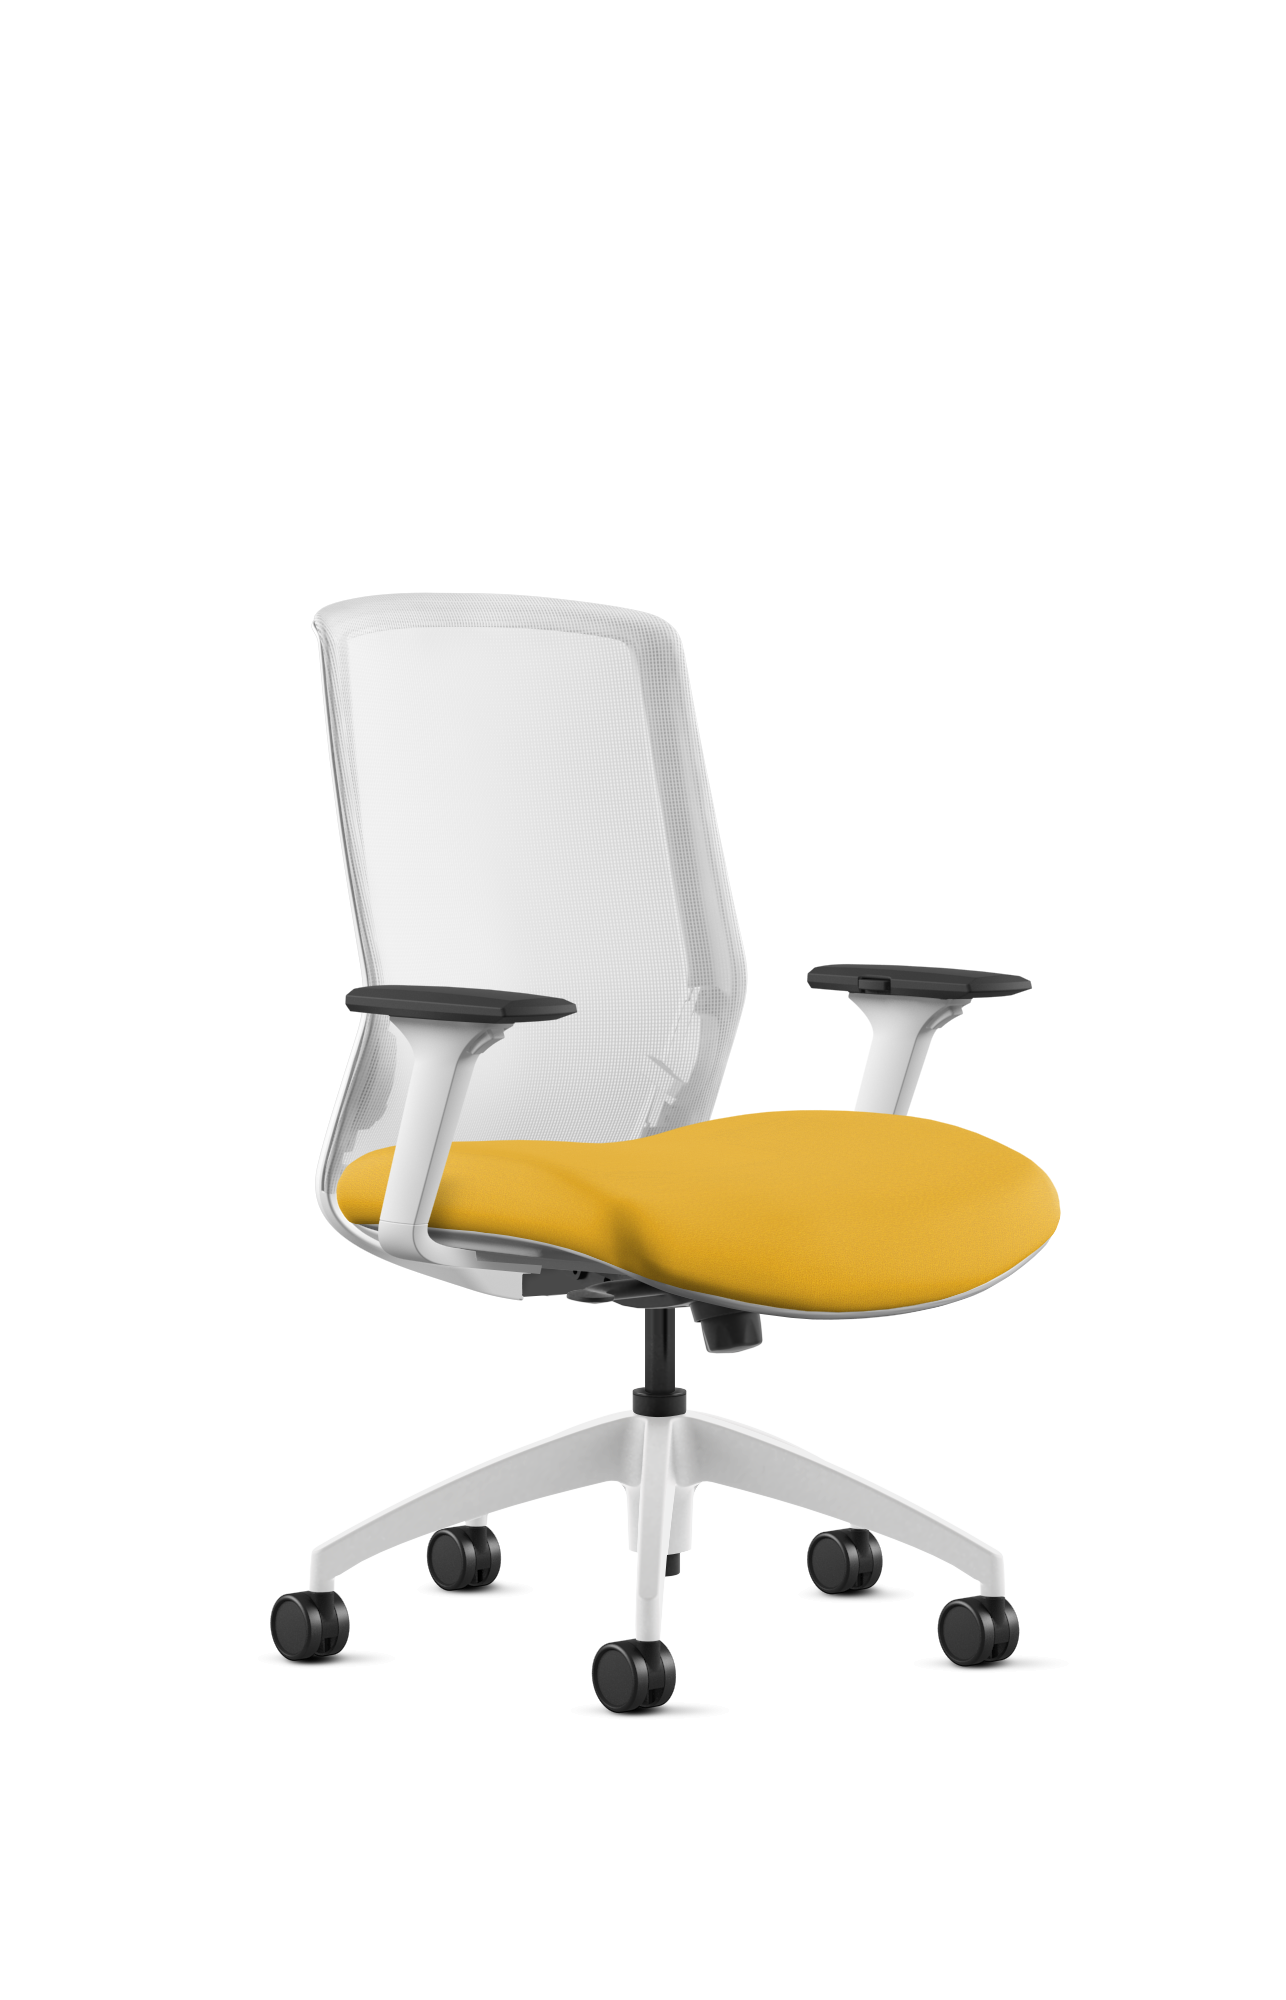 Colorful Bright Yellow Desk Chair That Can Bring A Chic Touch To